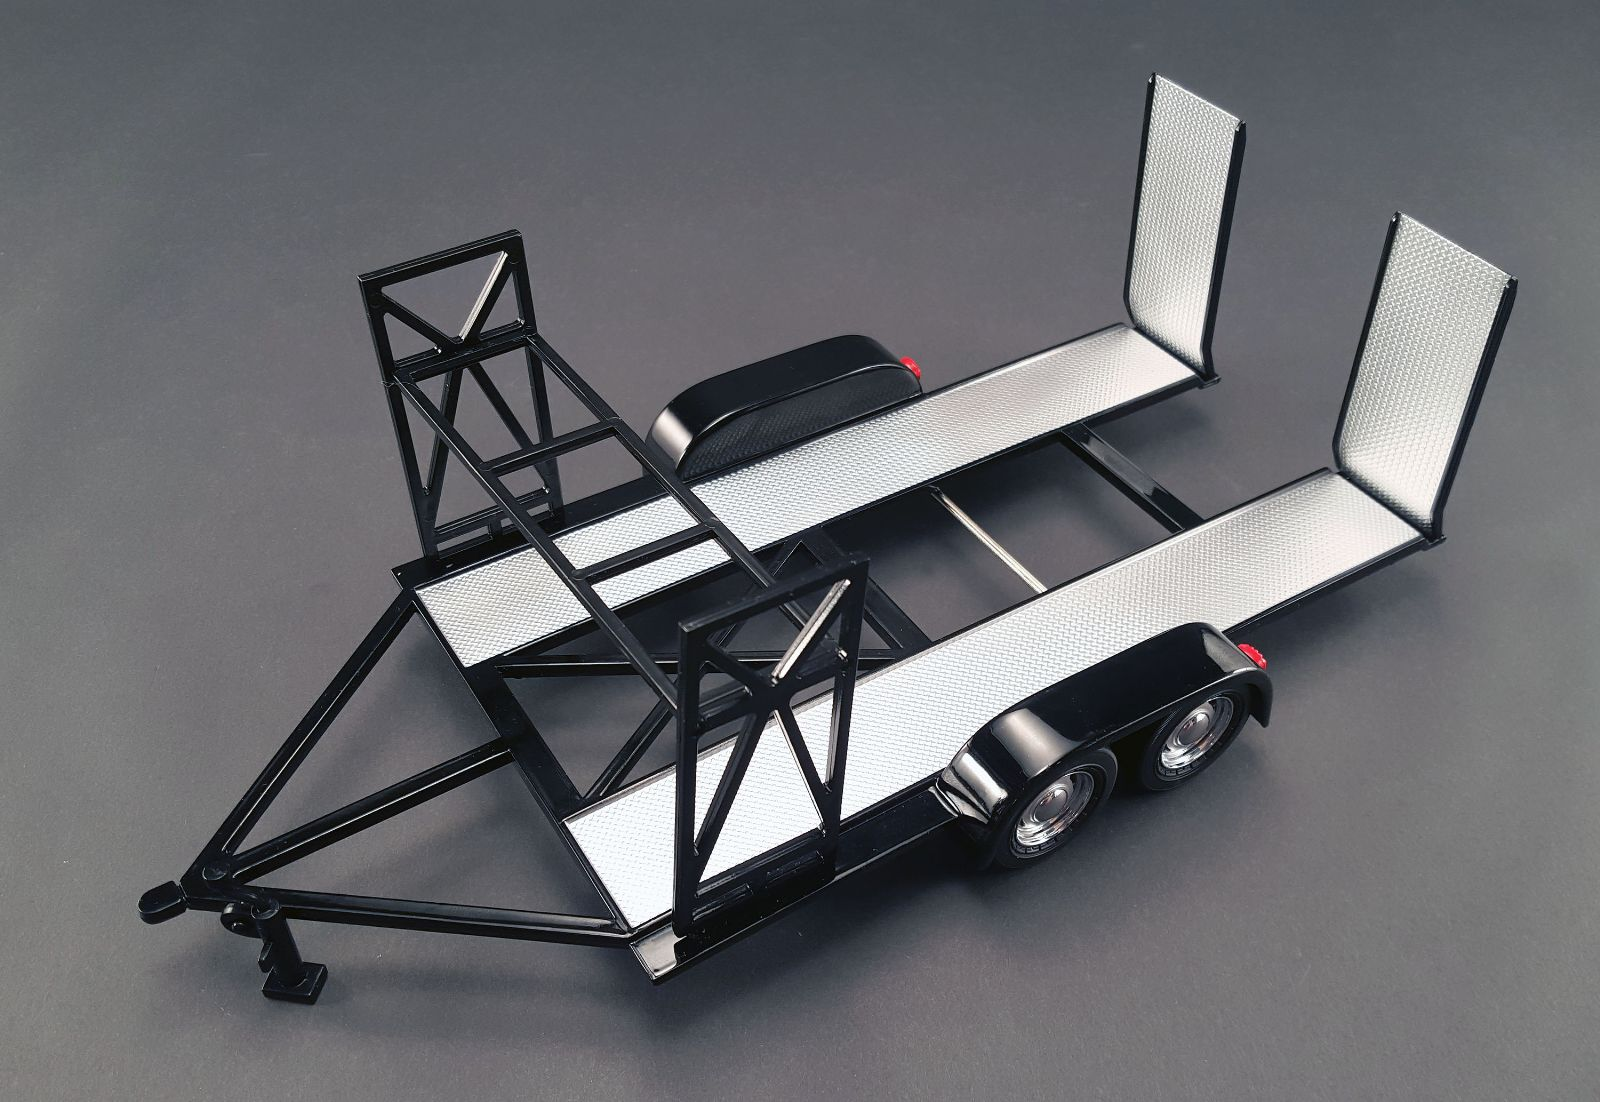 18820 - 1:18 GMP - 1:18 Tandem Car Trailer - Black